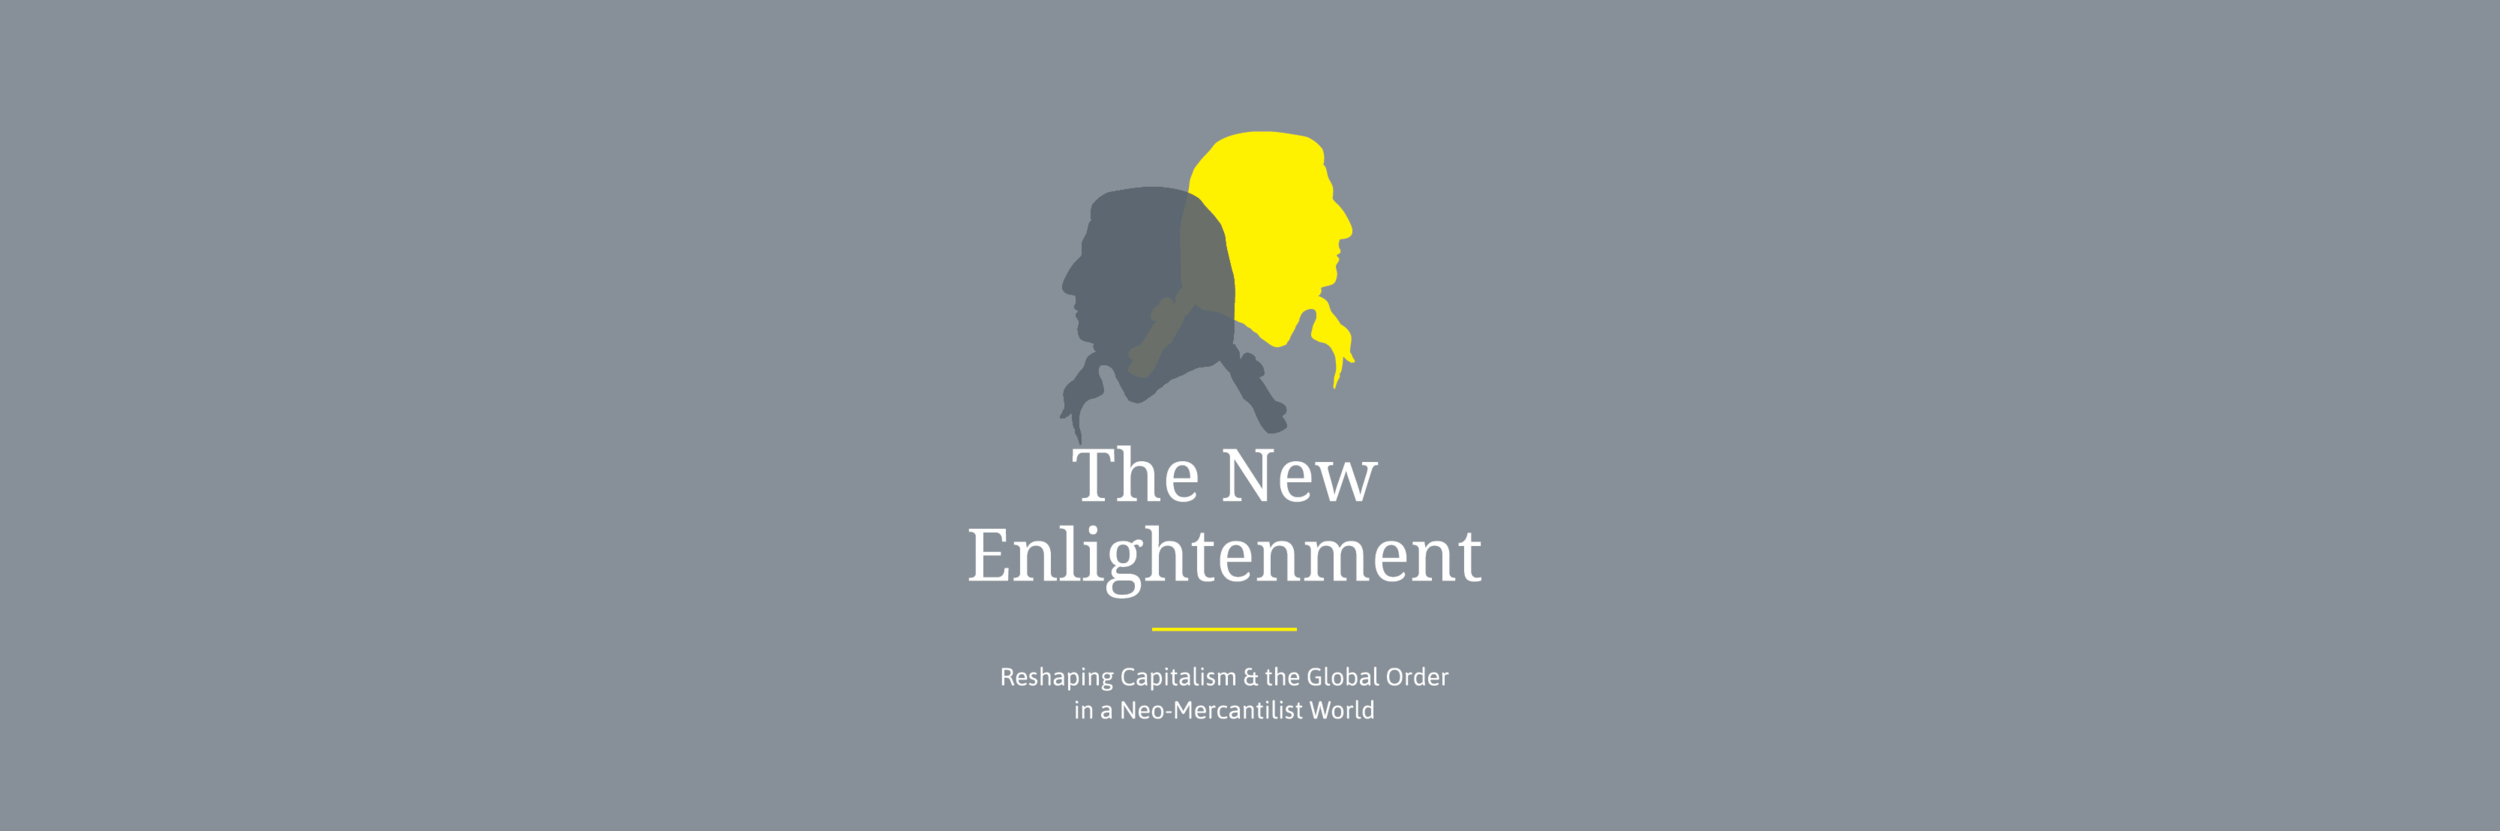 Enlightenment-Website-Header5.png